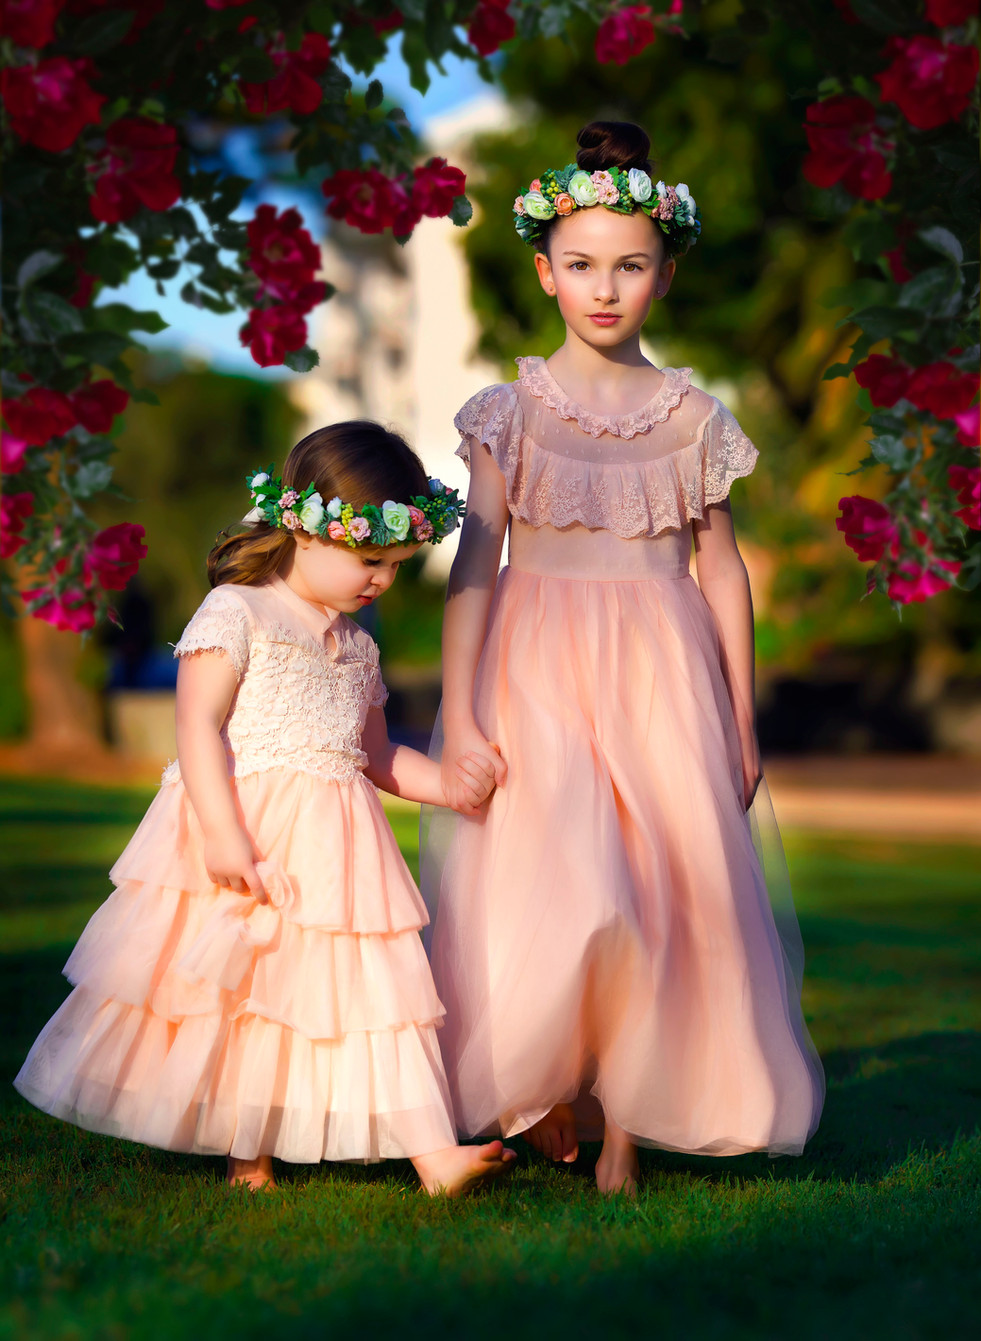 kids photoshoot in outdoor setting